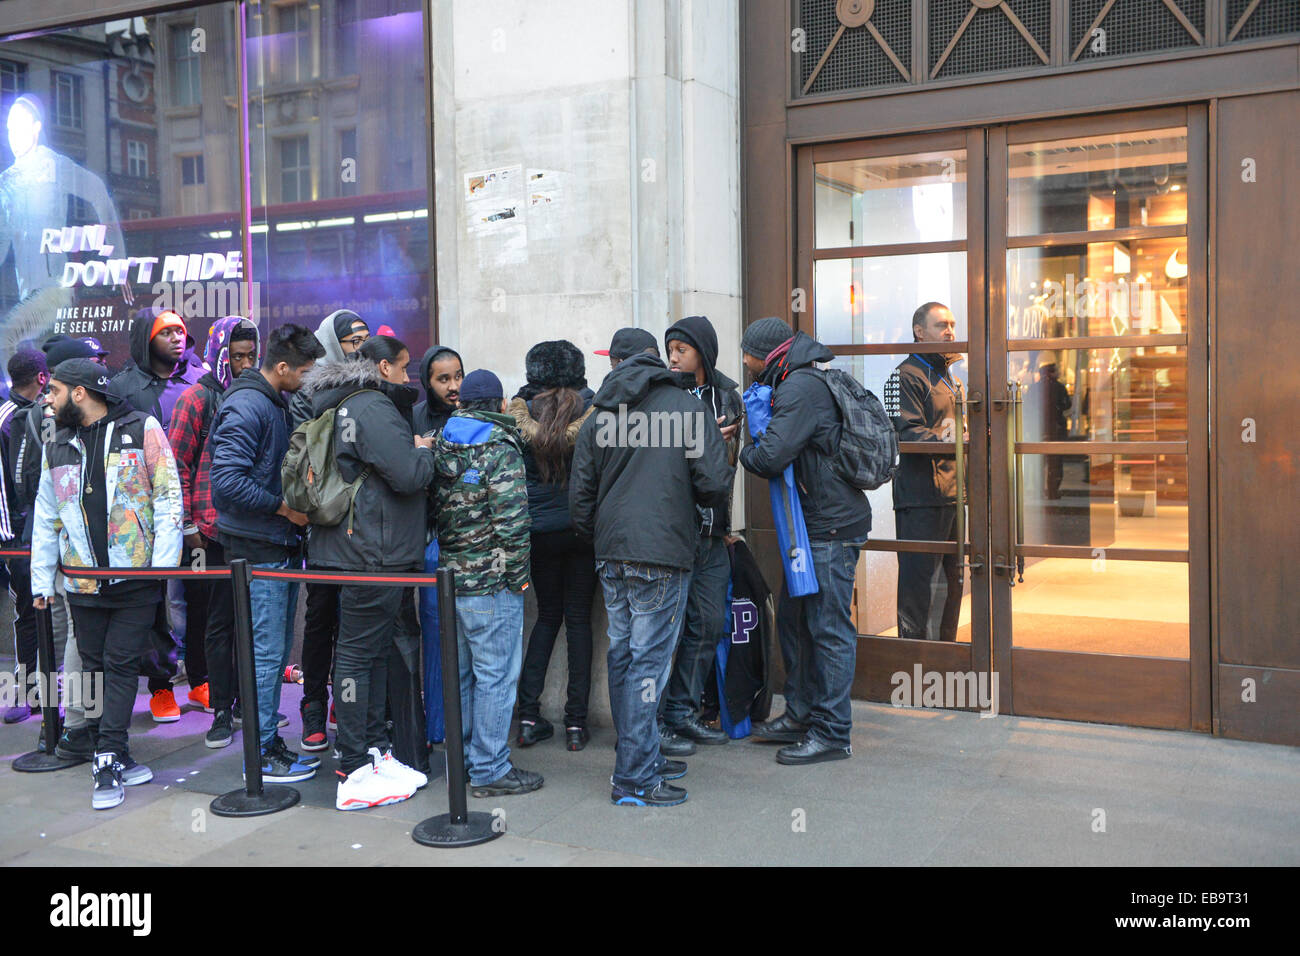 Black Friday Bargain Hunters Queue Outside The Nike Store Waiting To Be Let Inside Credit Matthew Chattle Alamy Live News